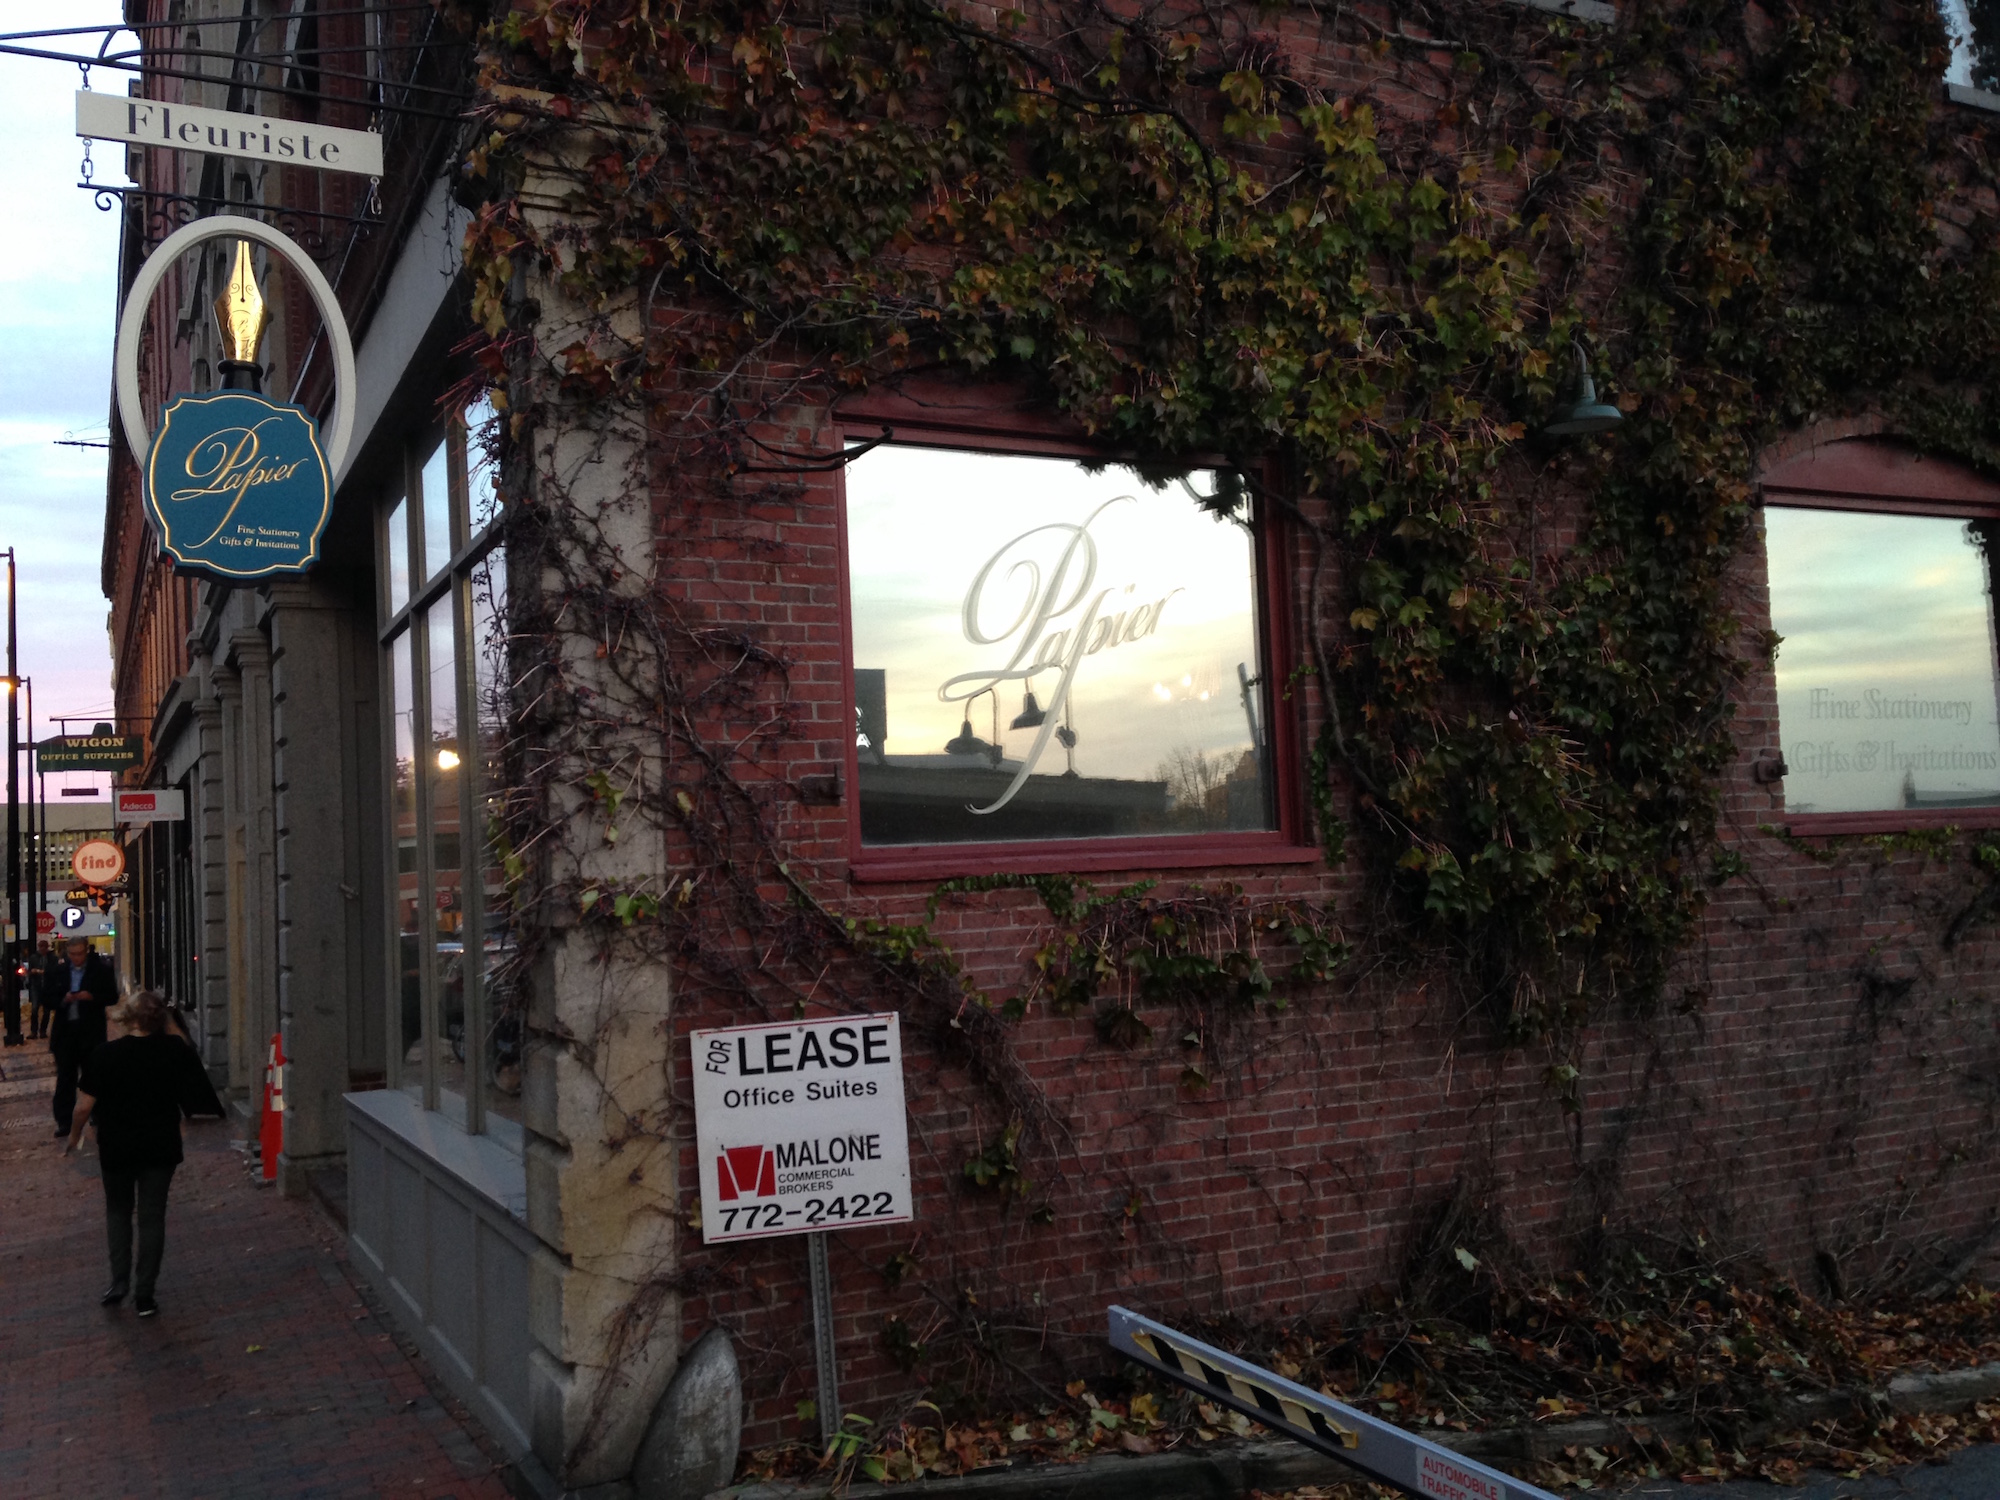 Formerly Papier, this is the future home of El Rayo, Portland.